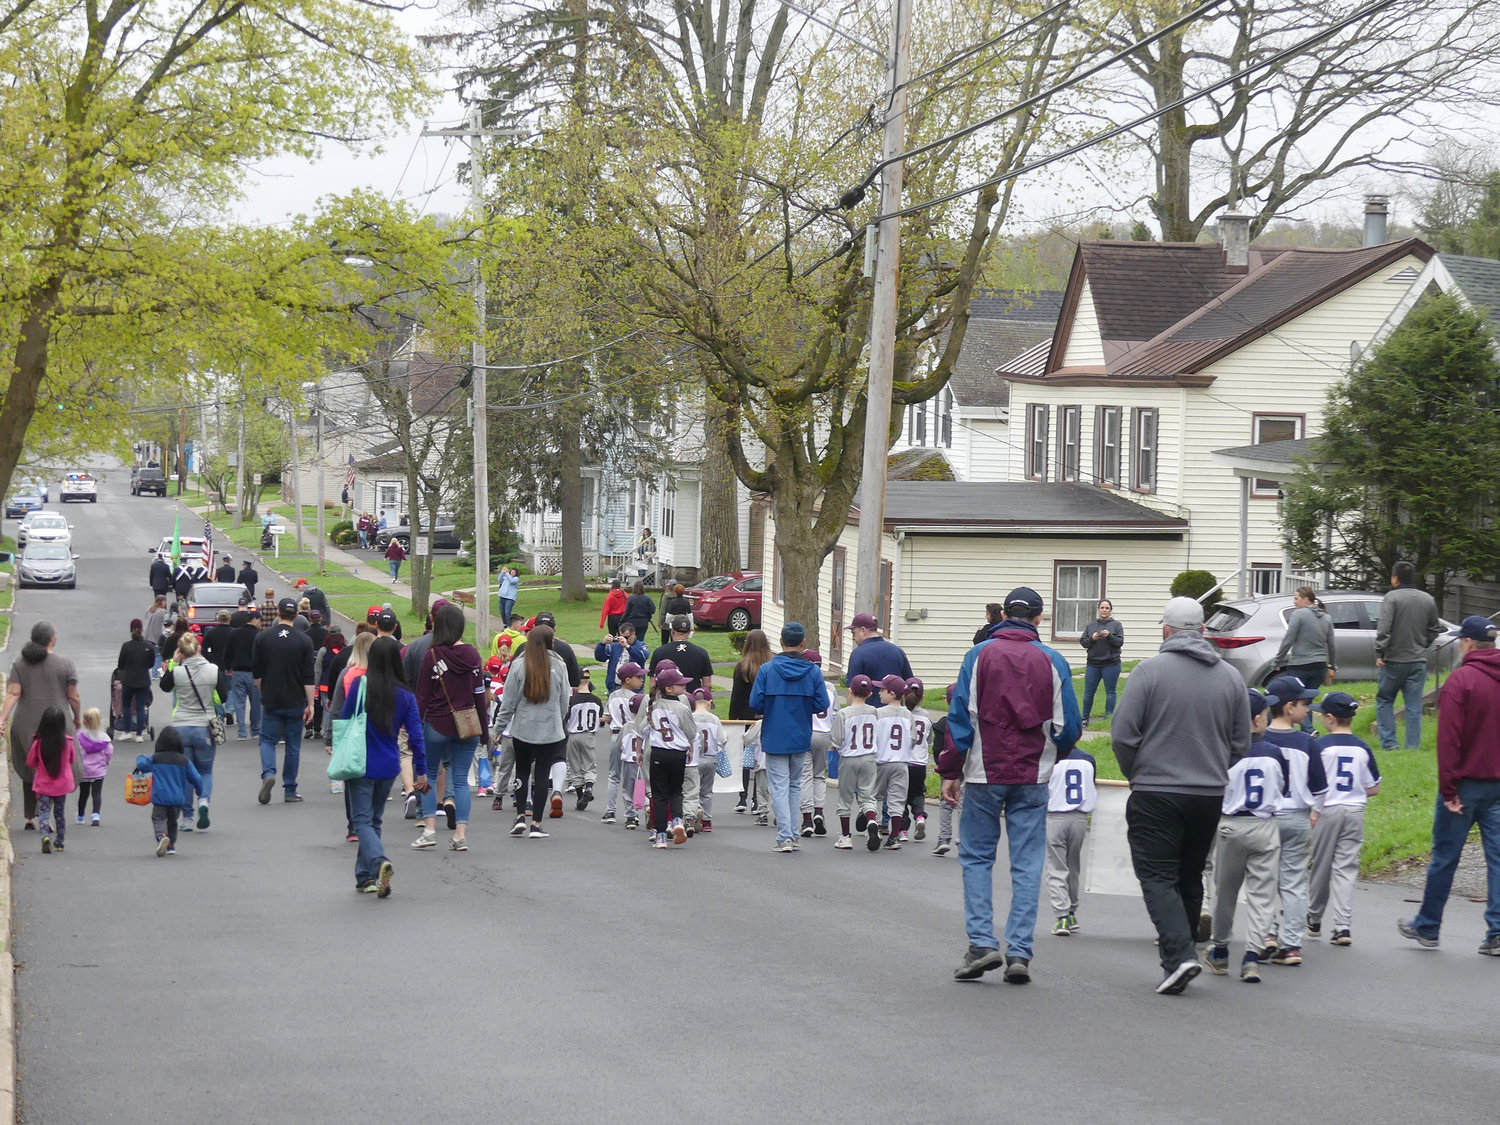 Oriskany little leaguers march during opening ceremony parade on Saturday on Utica St..